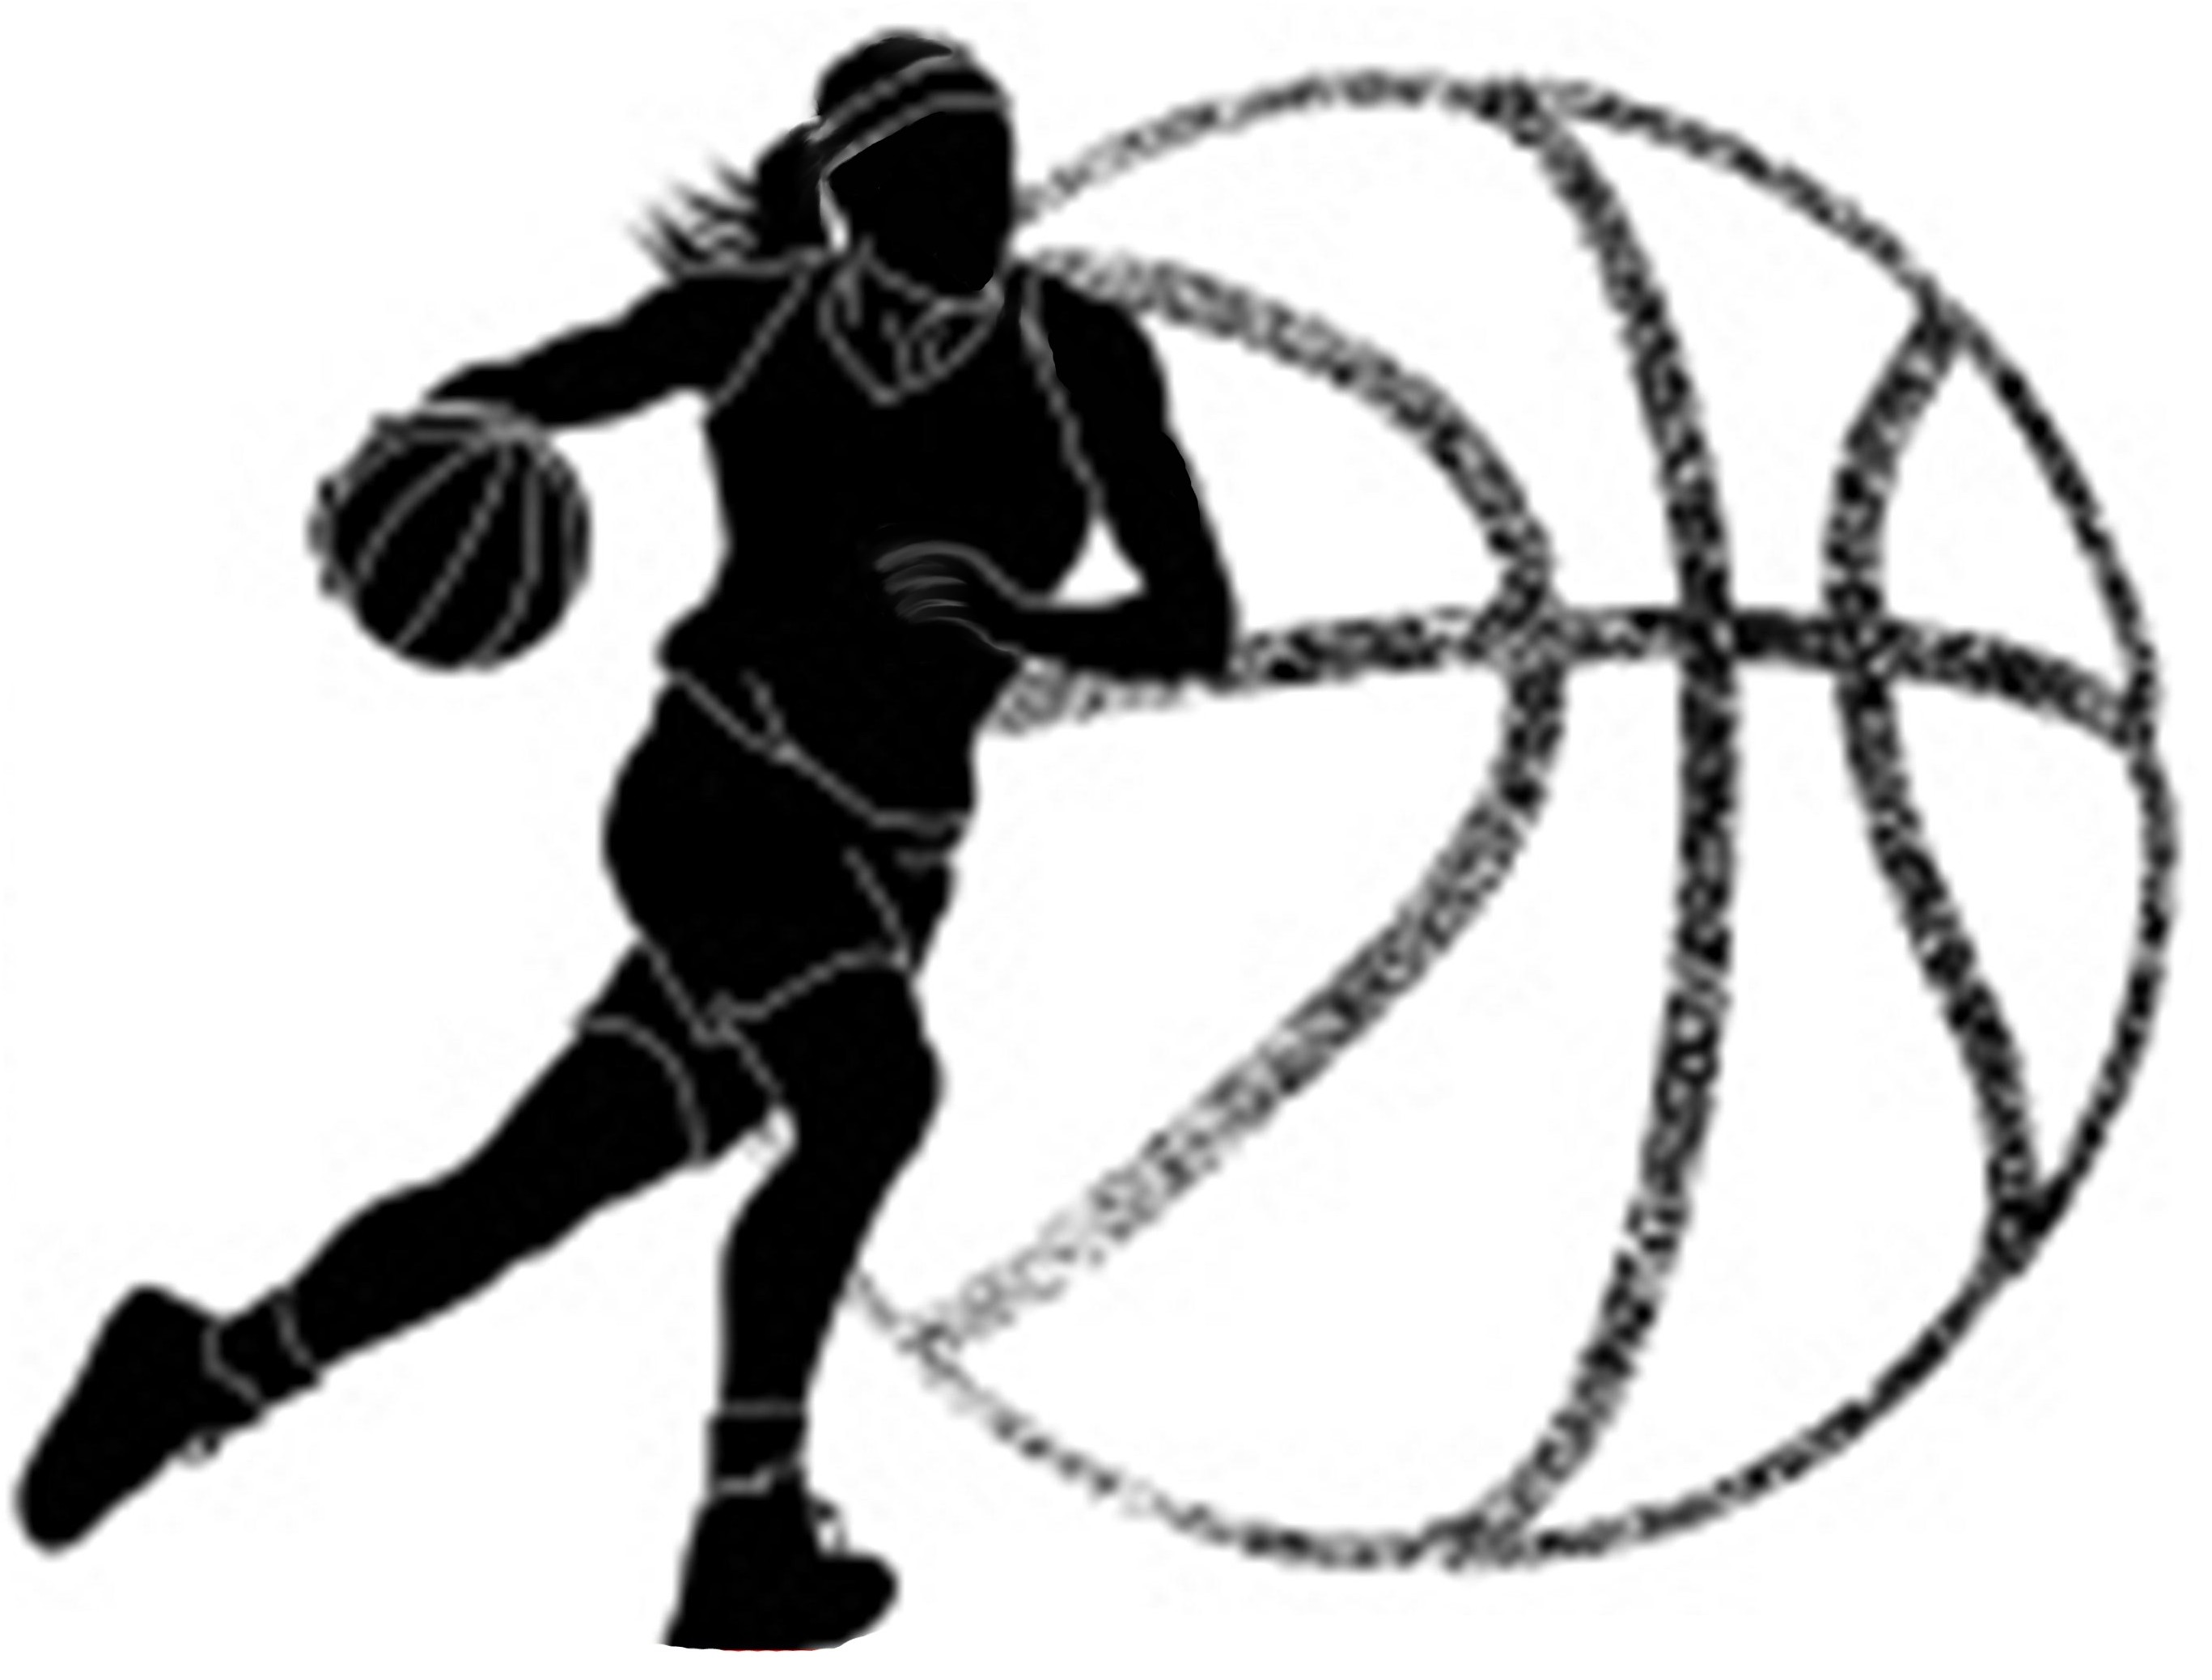 Unknown clipart female patient Basketball basketball Basketball Clipart Basketball